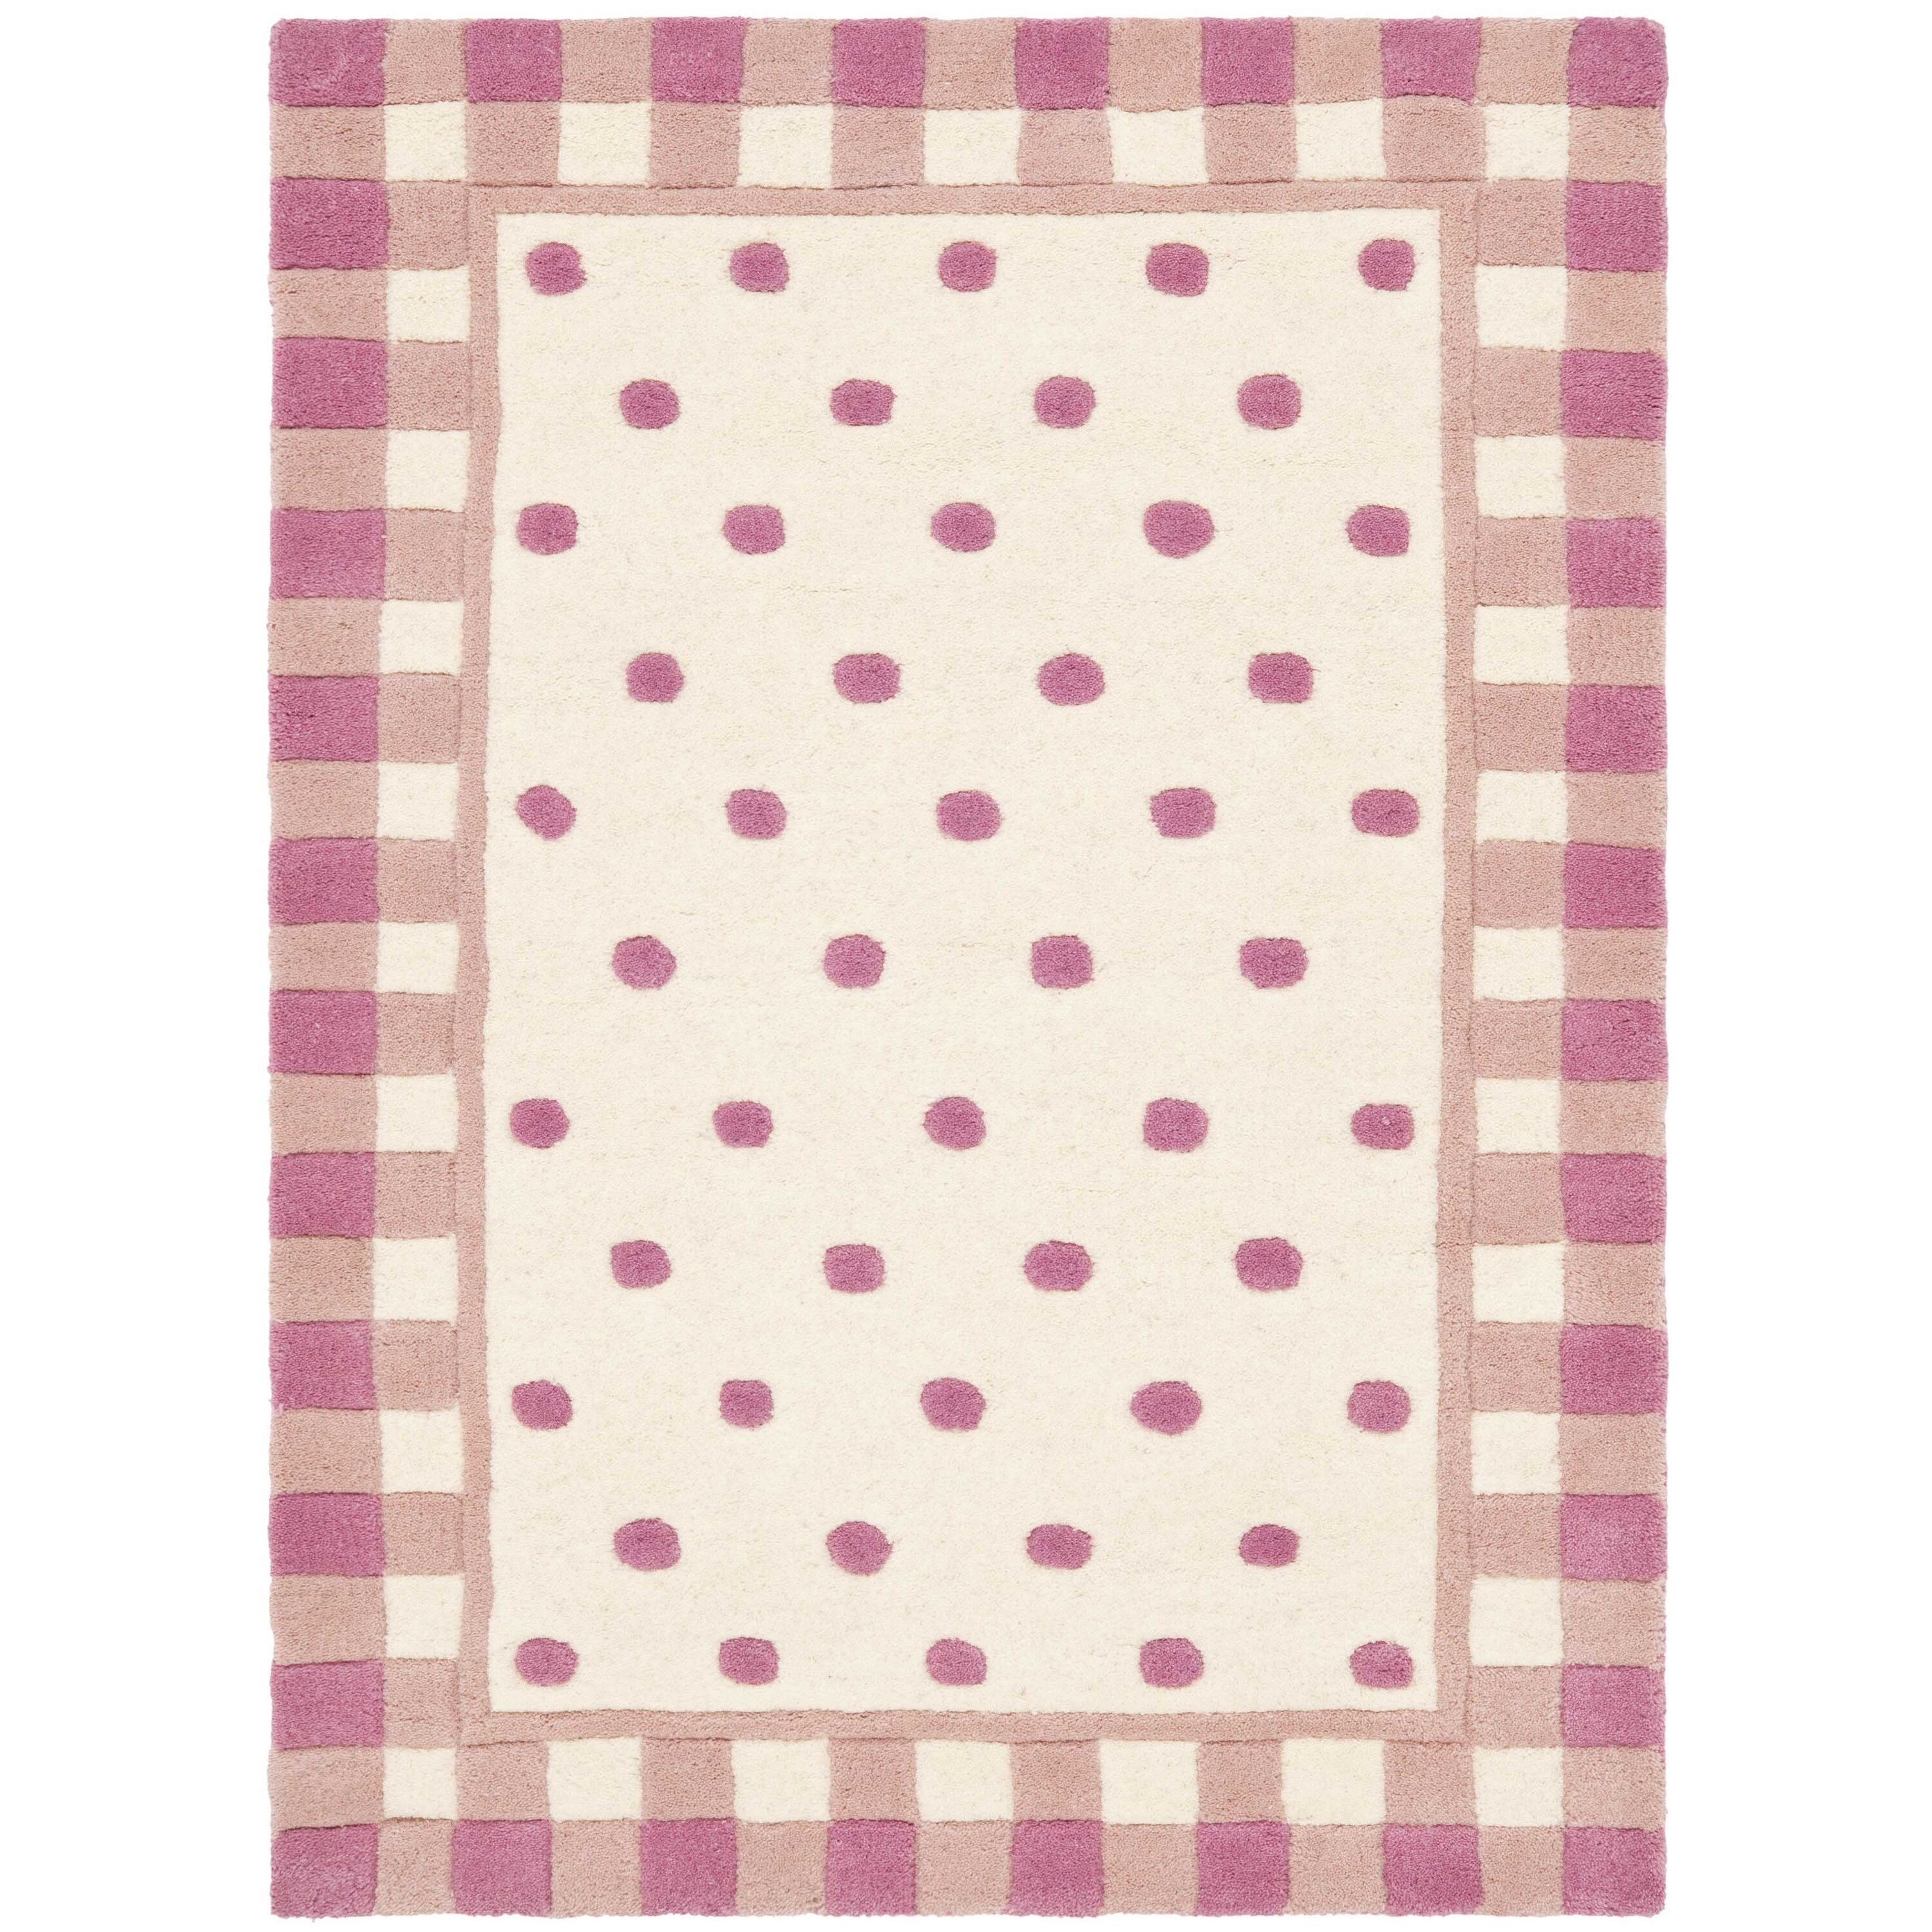 Safavieh Novelty Hand-Woven Wool Ivory/Pink Area Rug